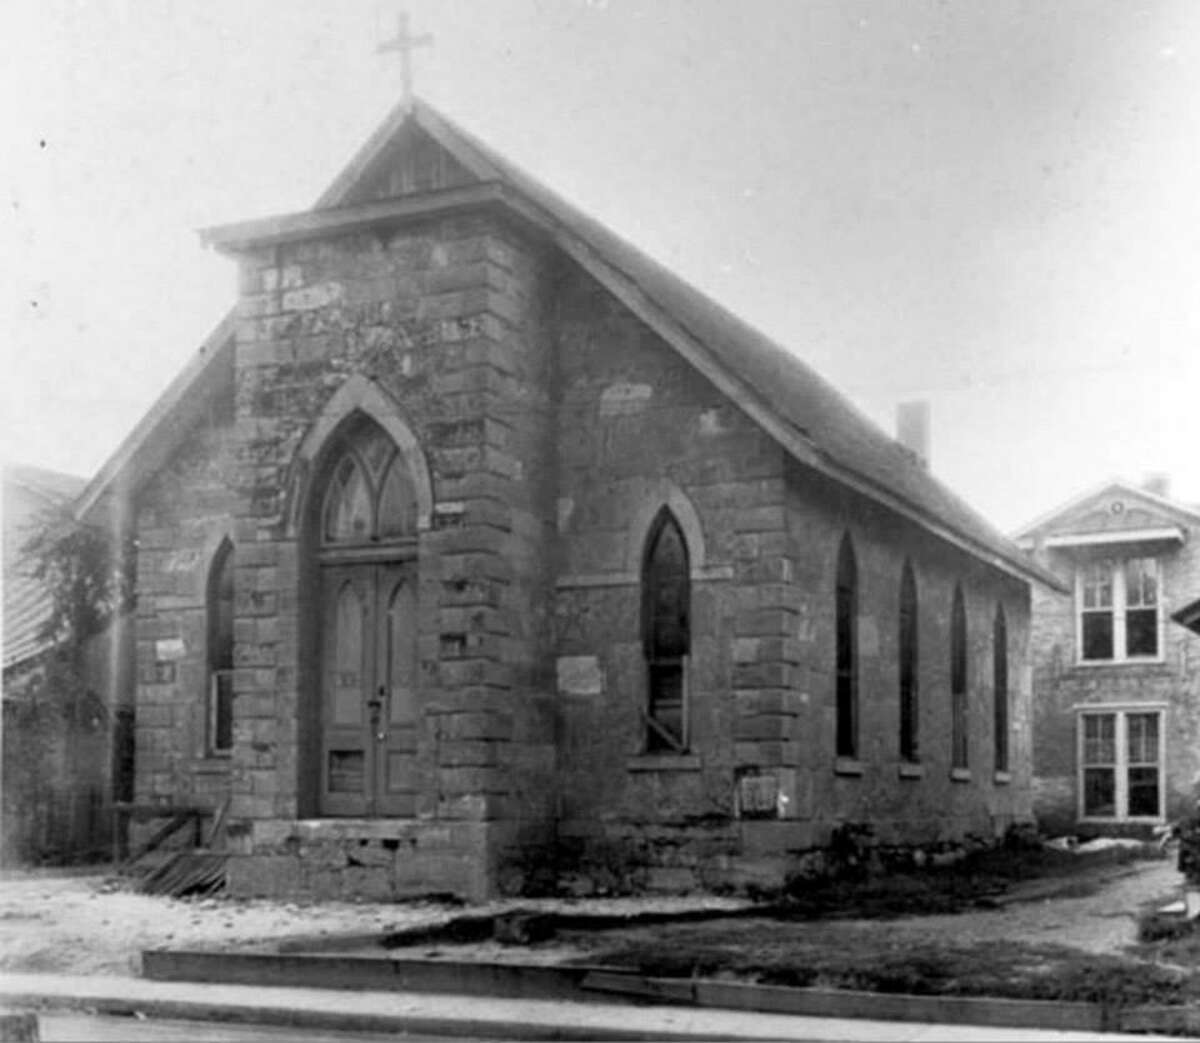 Built in 1879 for a German Methodist congregation, the church at La Villita was showing its age before it was included in the restoration of the La Villita Historic District that began in 1939. It was also home to a historically Black Episcopal congregation, a radio church and a long-running men's Bible study group.